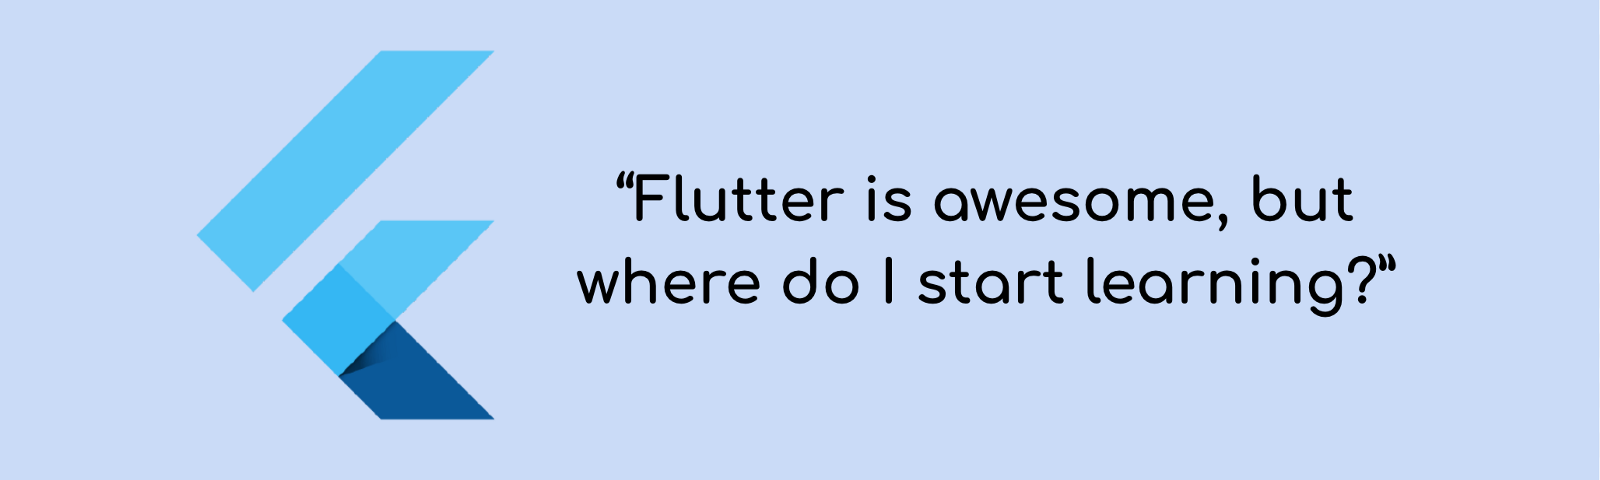 Flutter is awesome, but where do I start learning?""